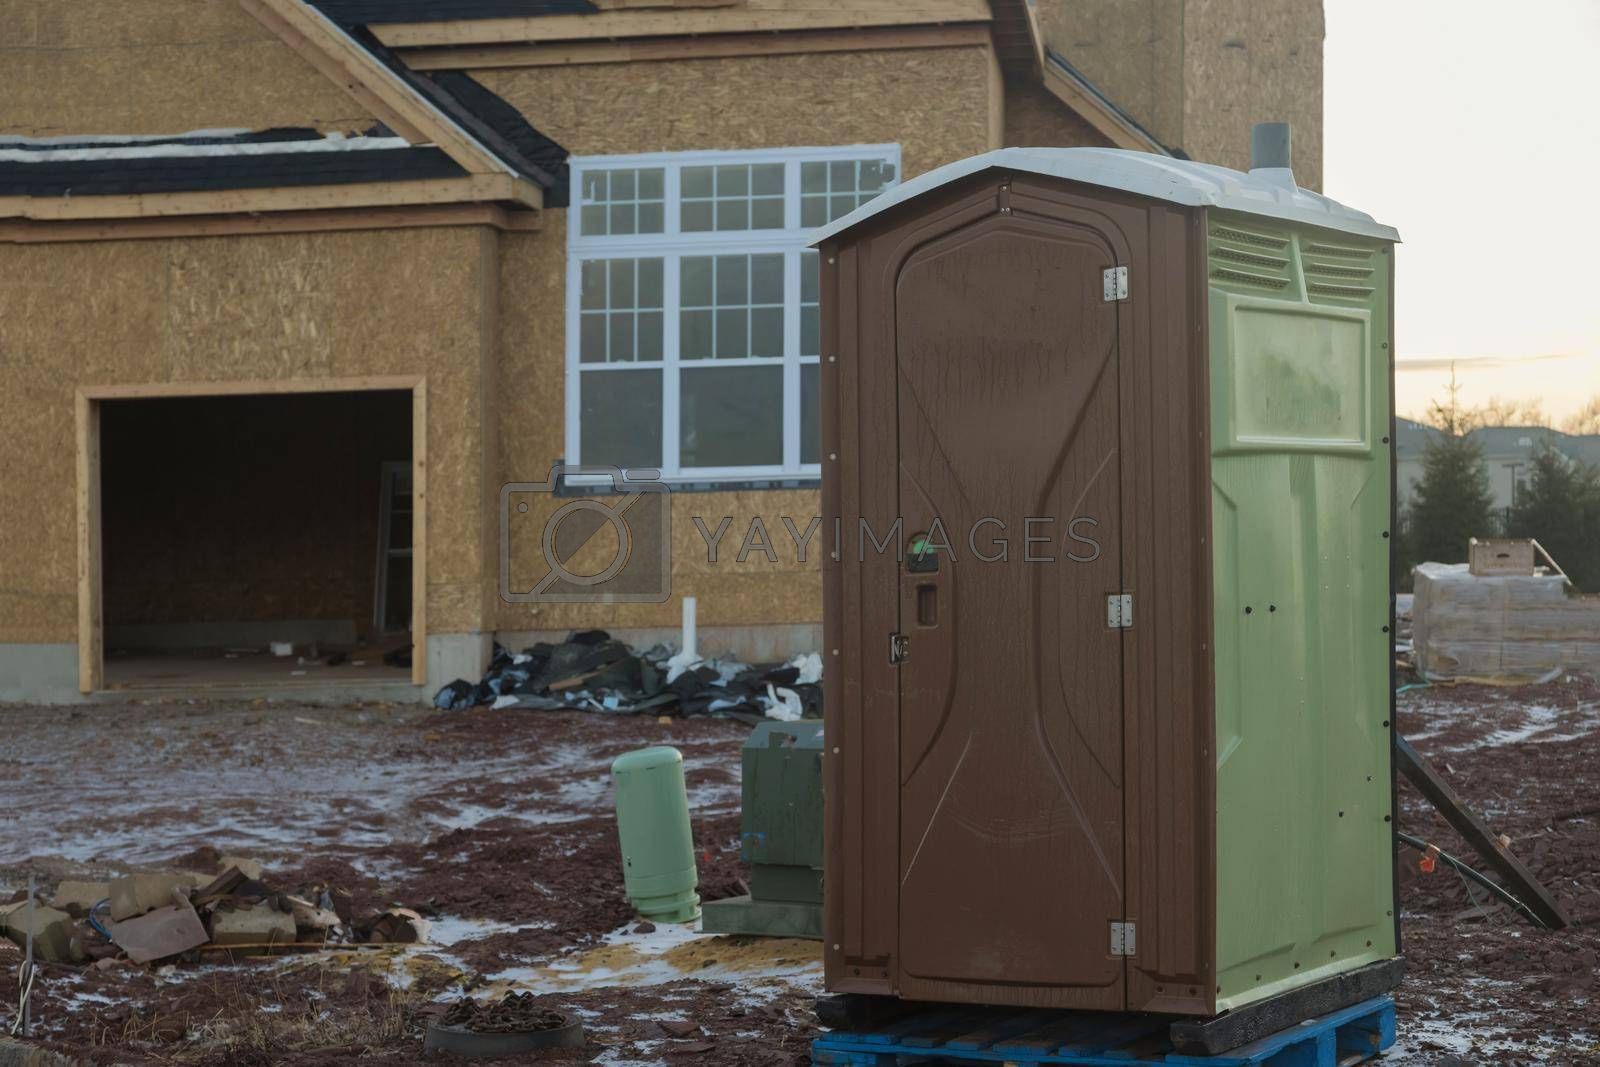 Transportable WC used in construction industry portable toilet cabin system.